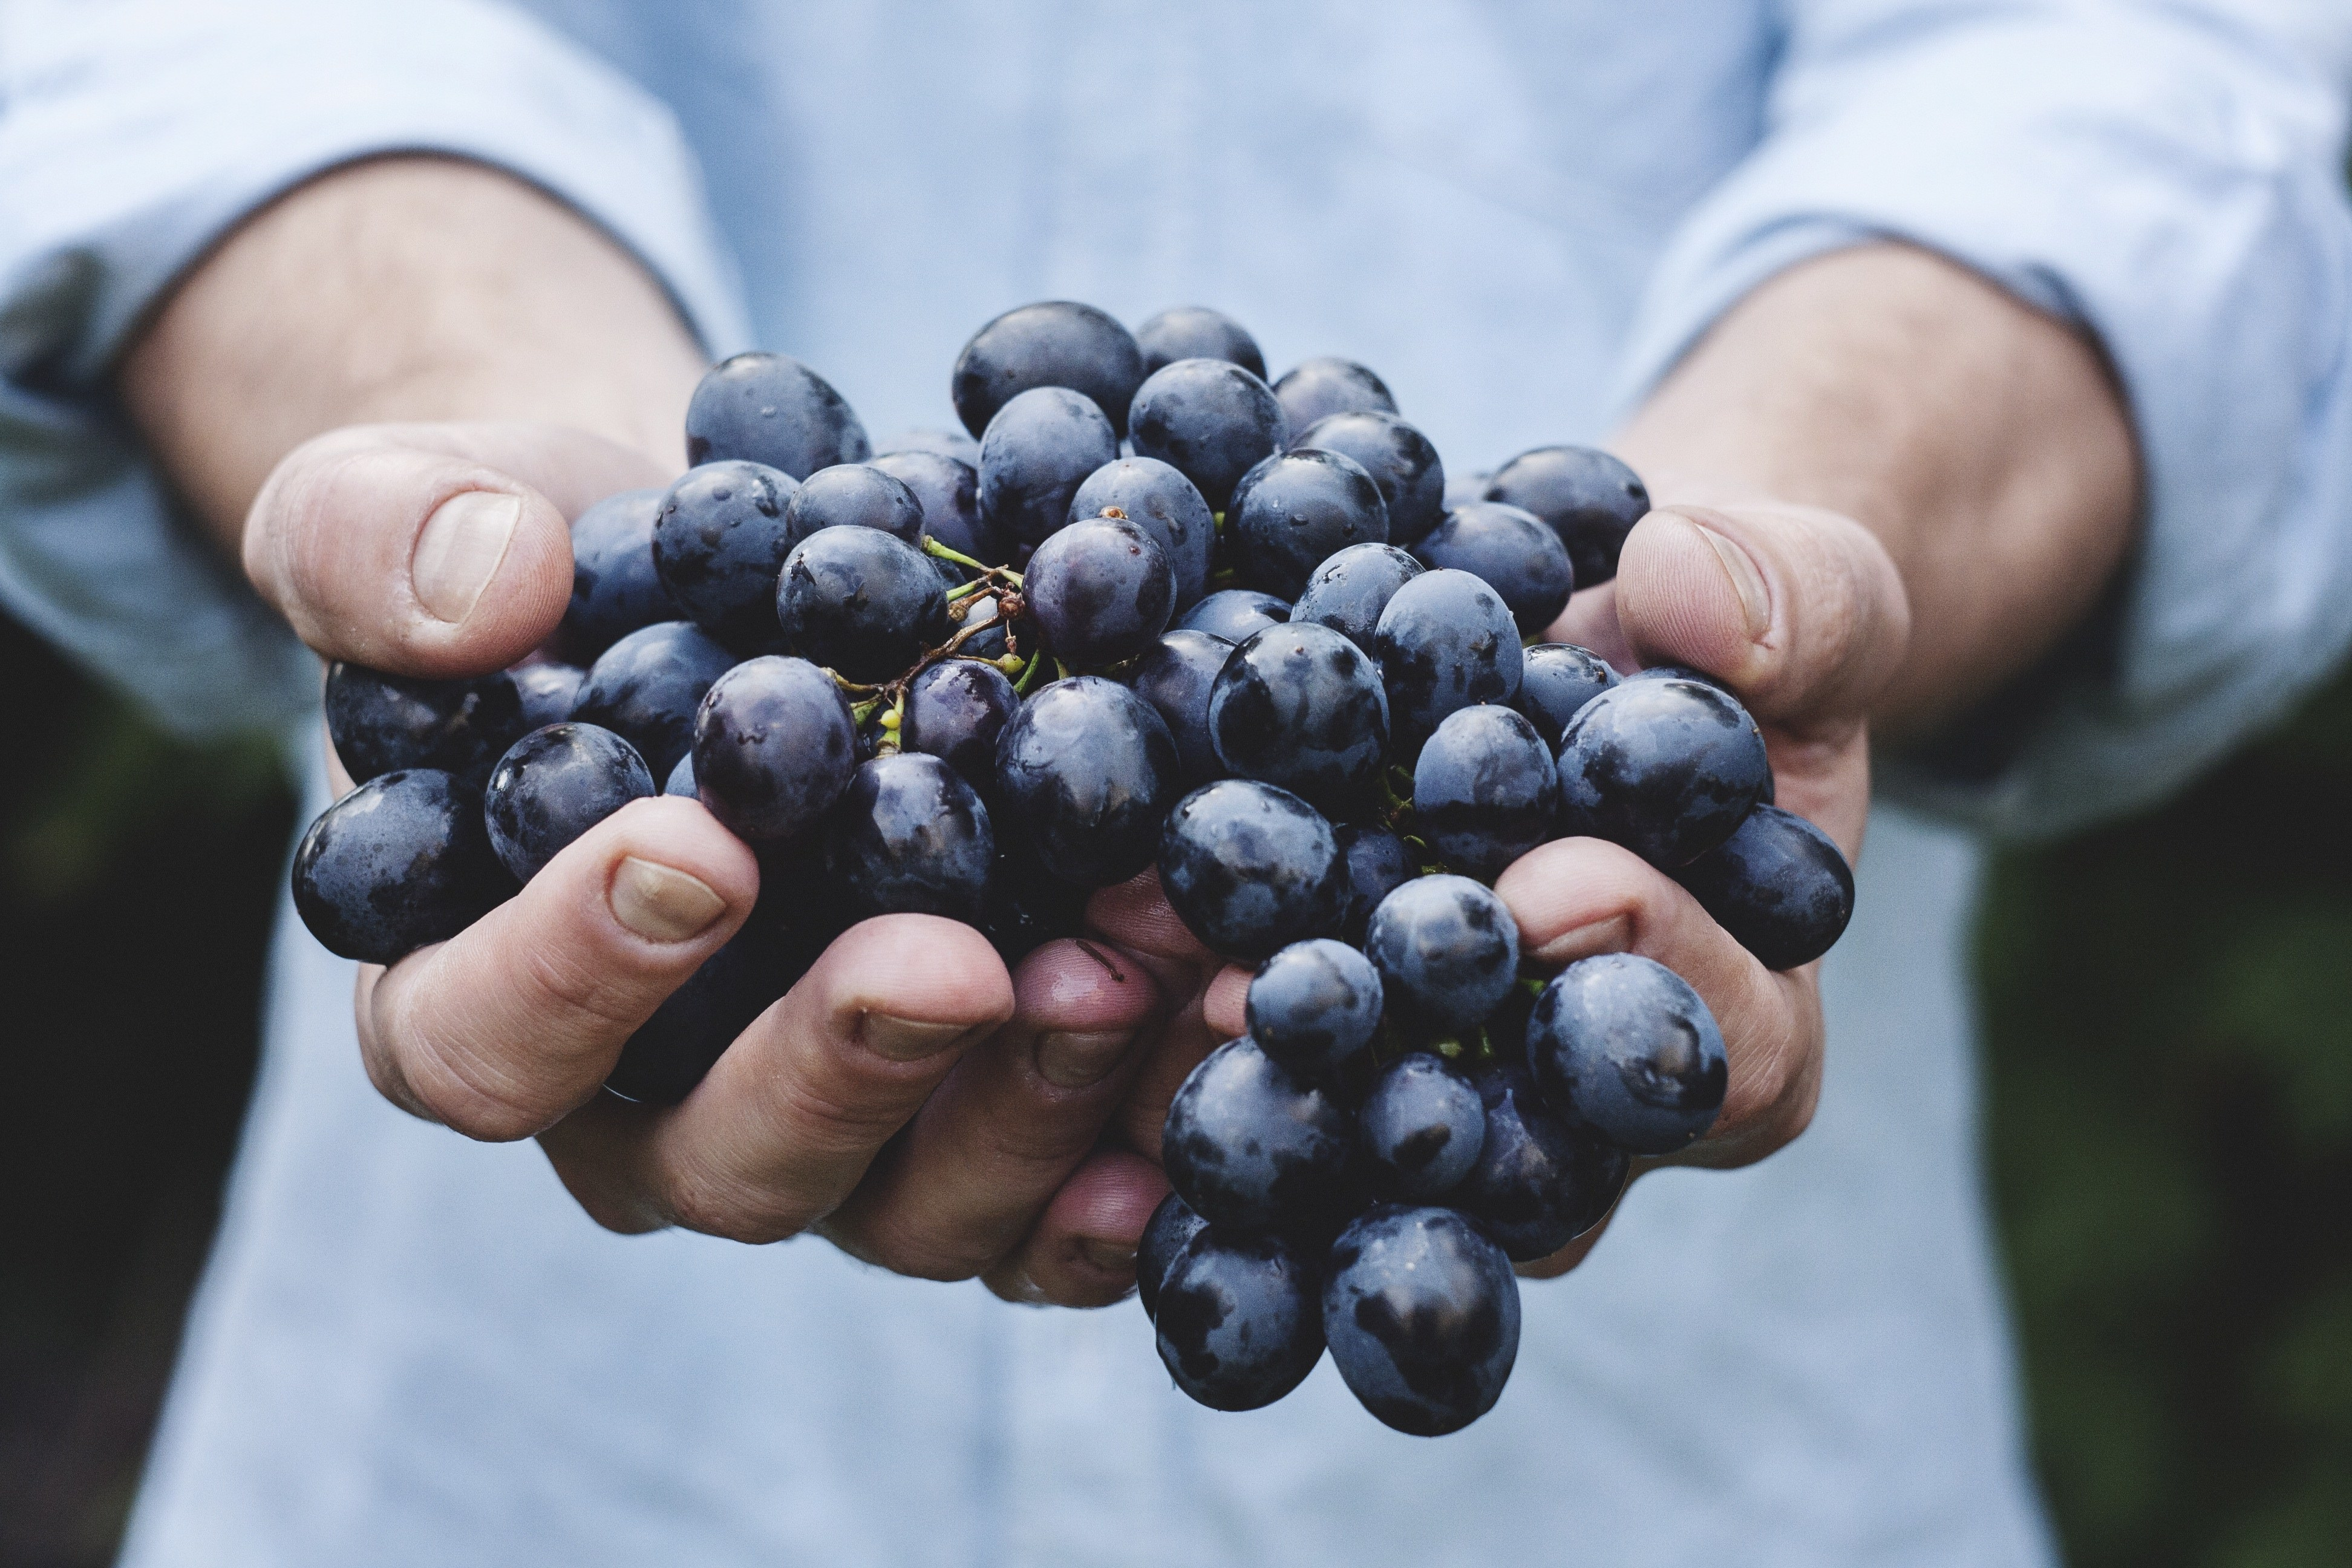 Grapes and healthy food for skin